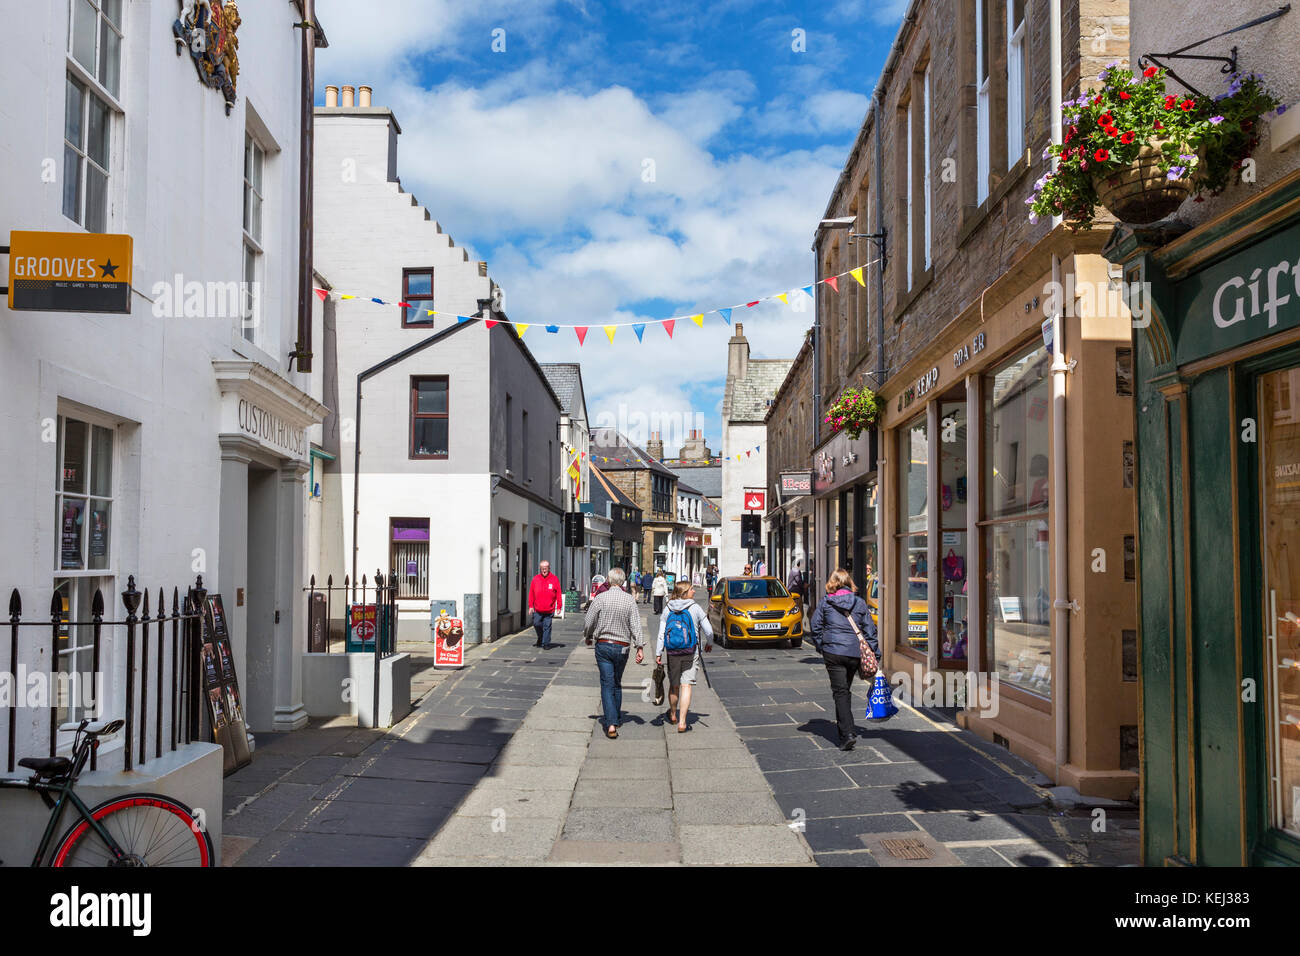 Shops on Albert Street in the town centre, Kirkwall, Mainland, Orkney, Orkney Islands, Scotland, UK - Stock Image